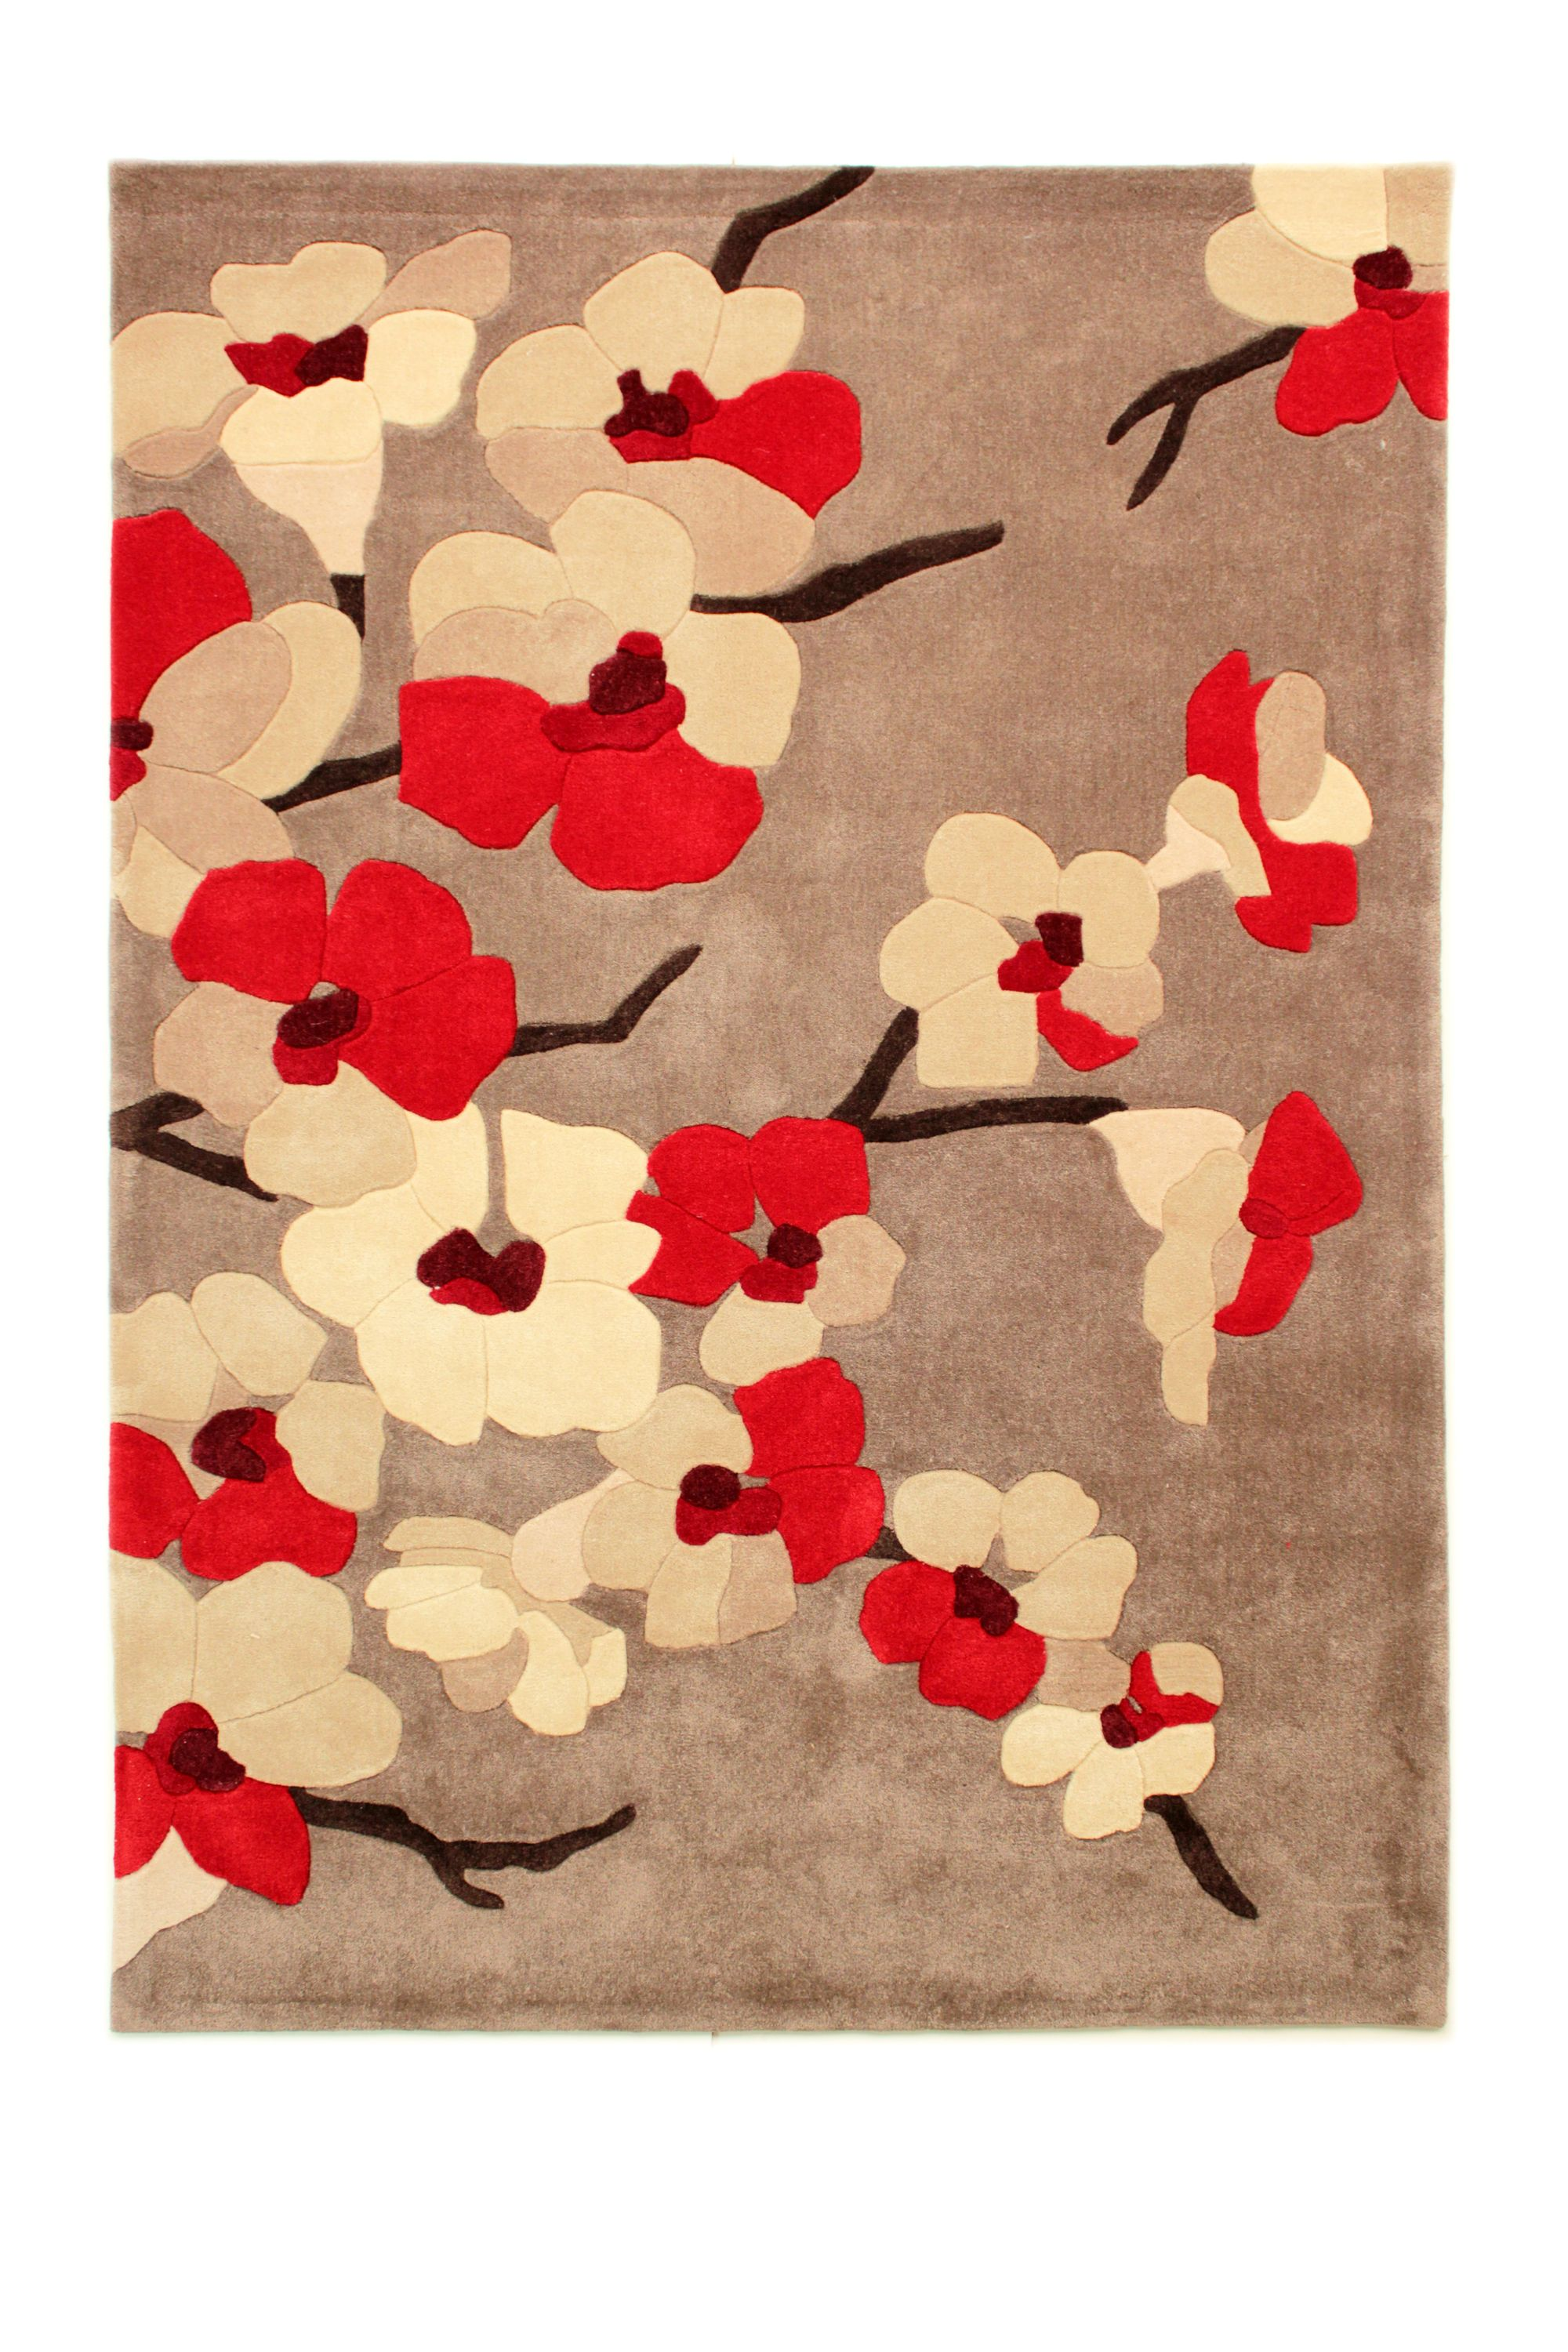 Flair Rugs Flair Rugs Blossom red rug 135x135cm